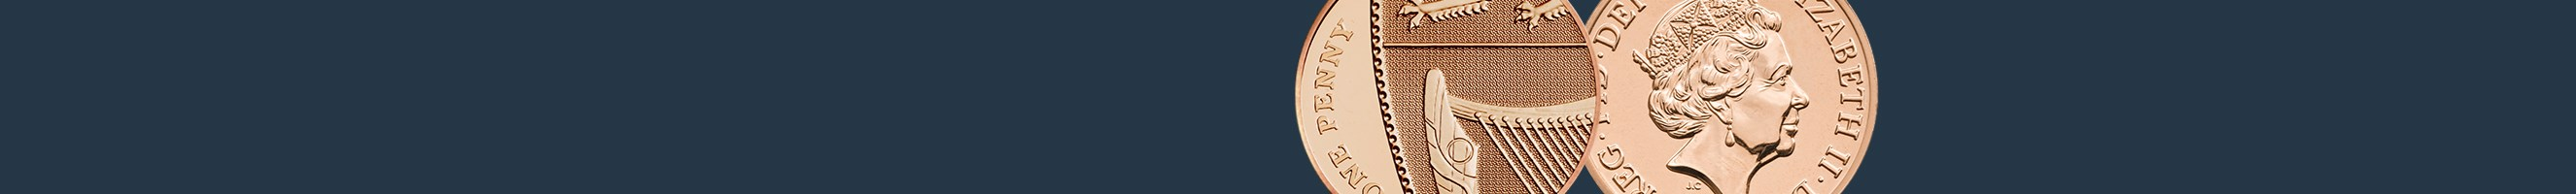 One Penny Coin | The Royal Mint